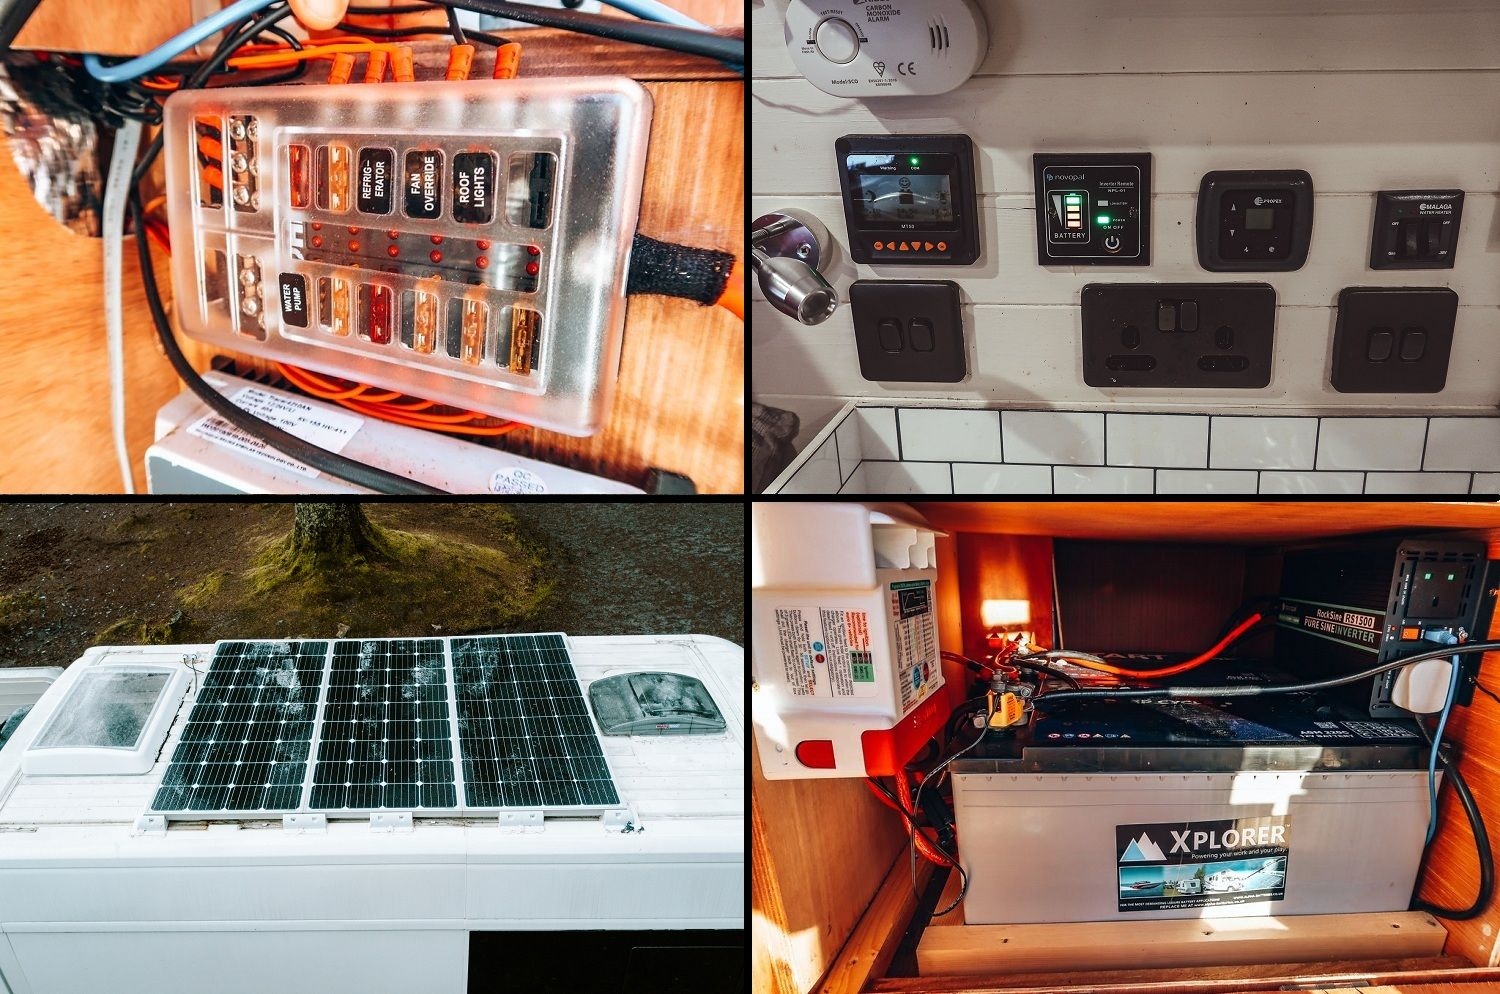 Our campervan electrical system